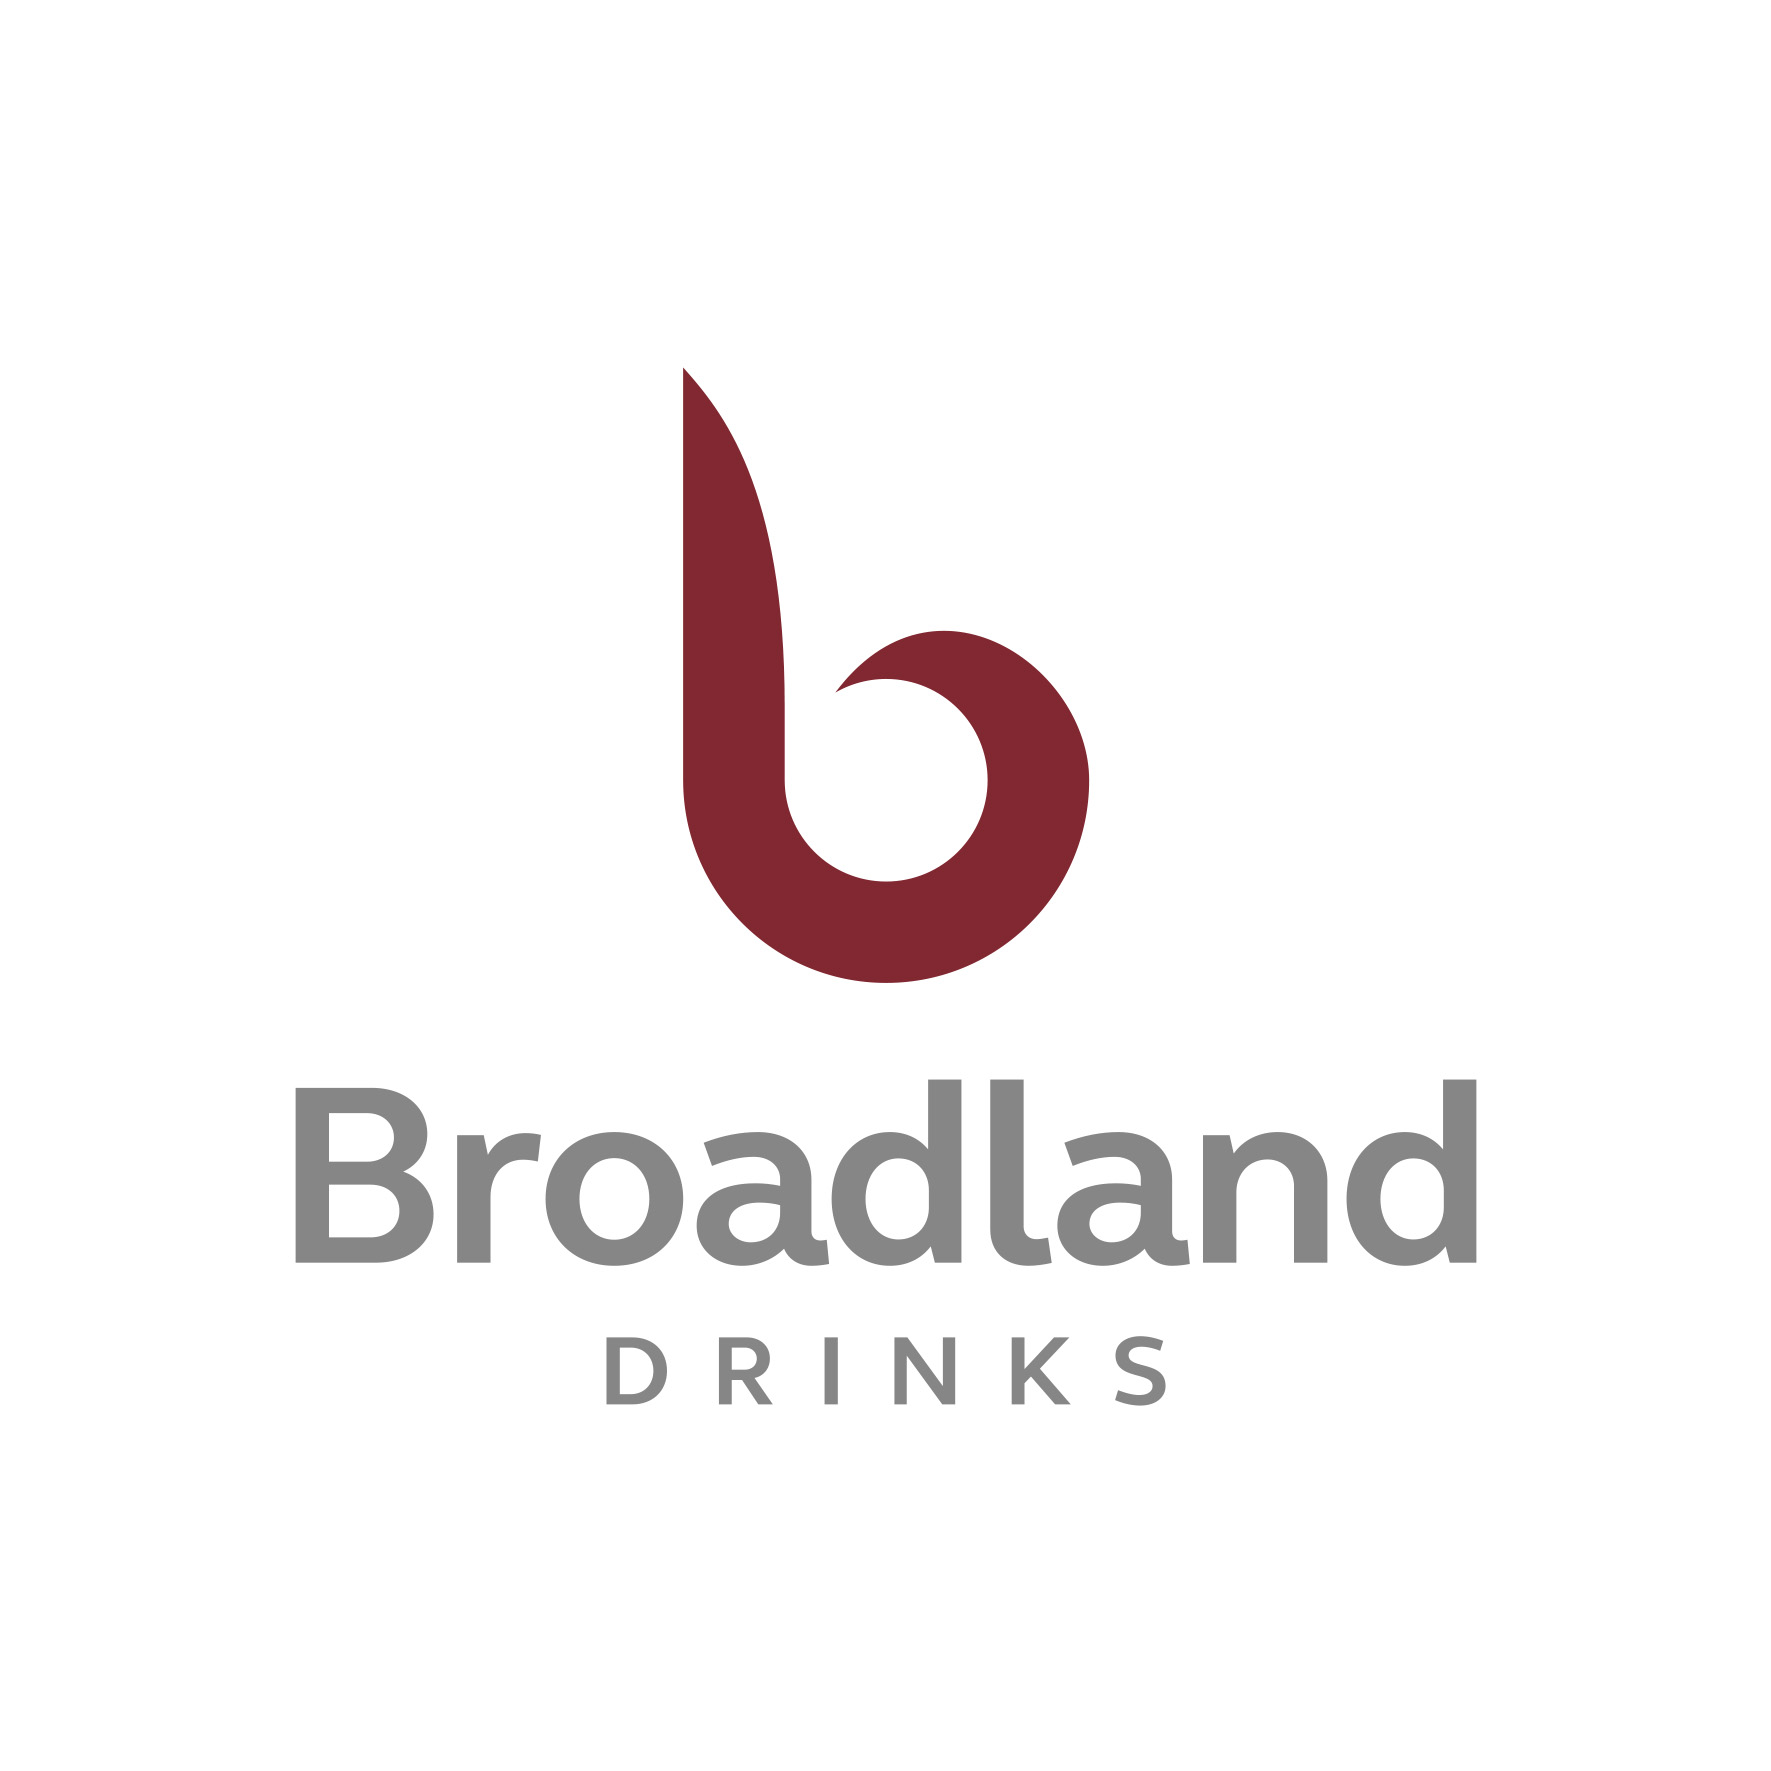 Broadland Drinks